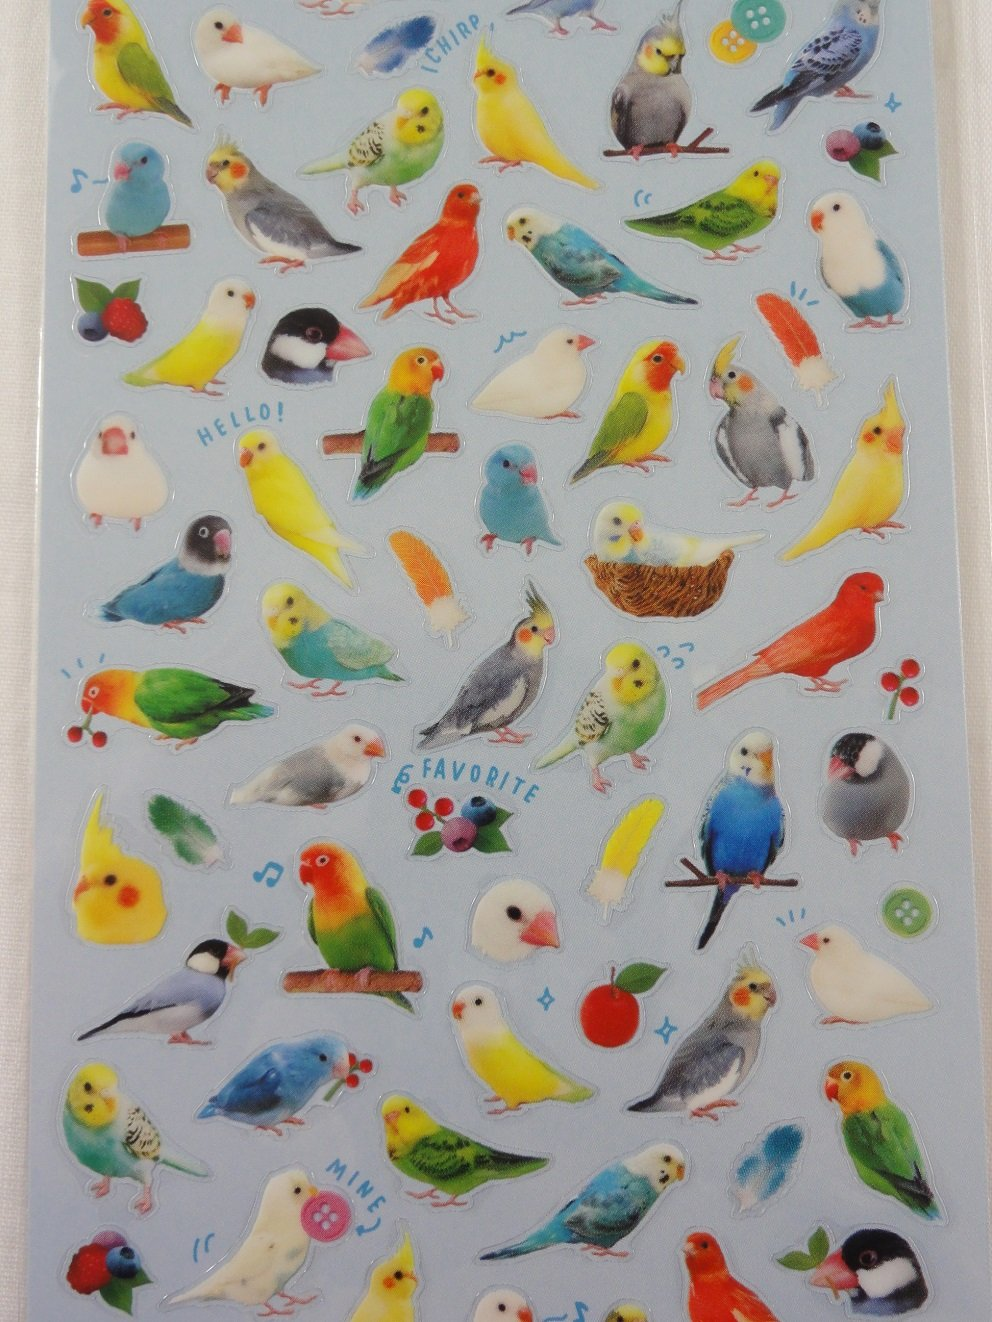 Cute Kawaii Mind Wave Birds Sticker Sheet - for Journal Planner Craft Scrapbook Notebook Organizer